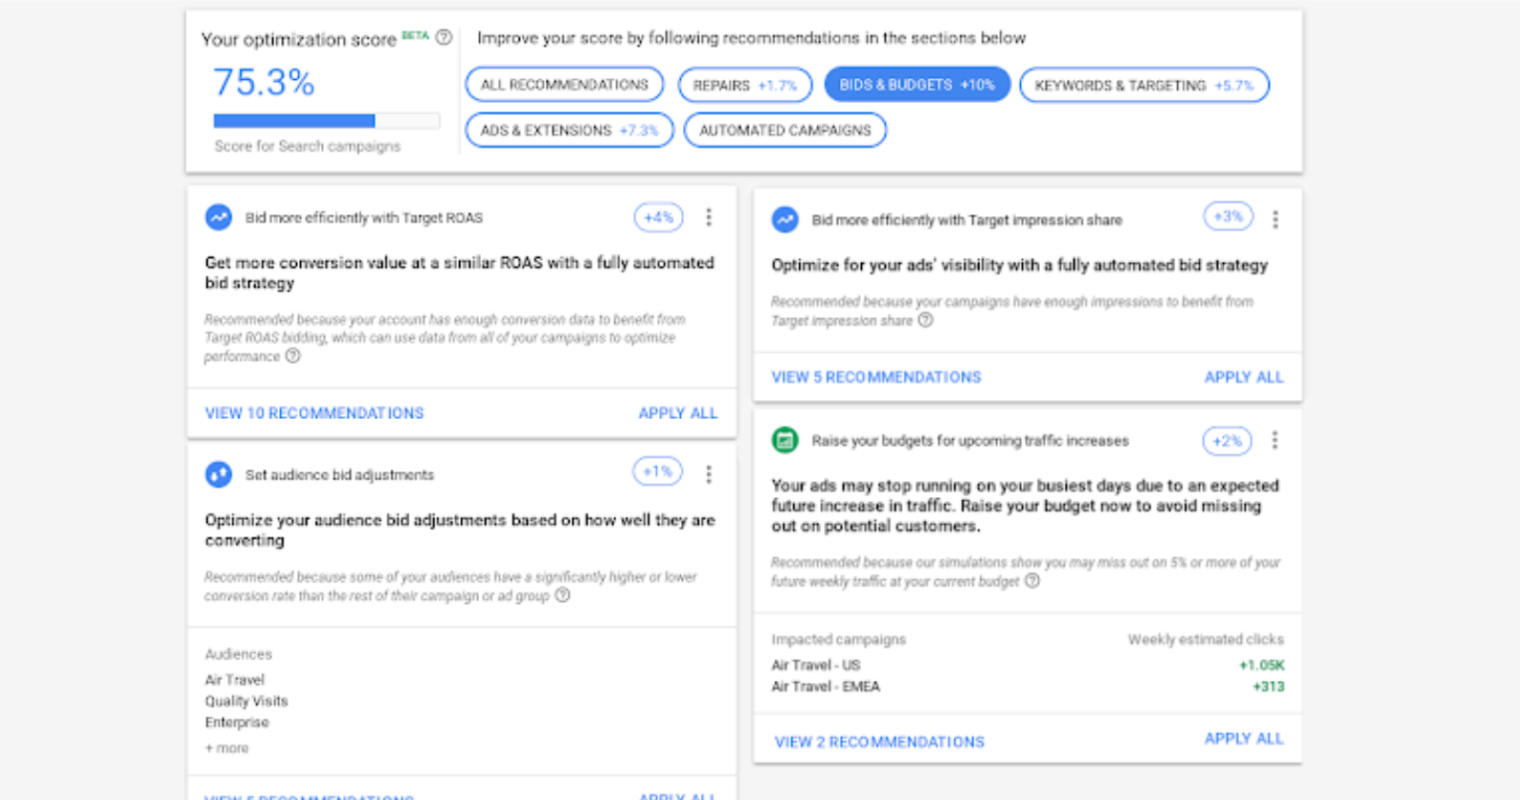 Google Ads Offers New Recommendations to Improve Optimization Score